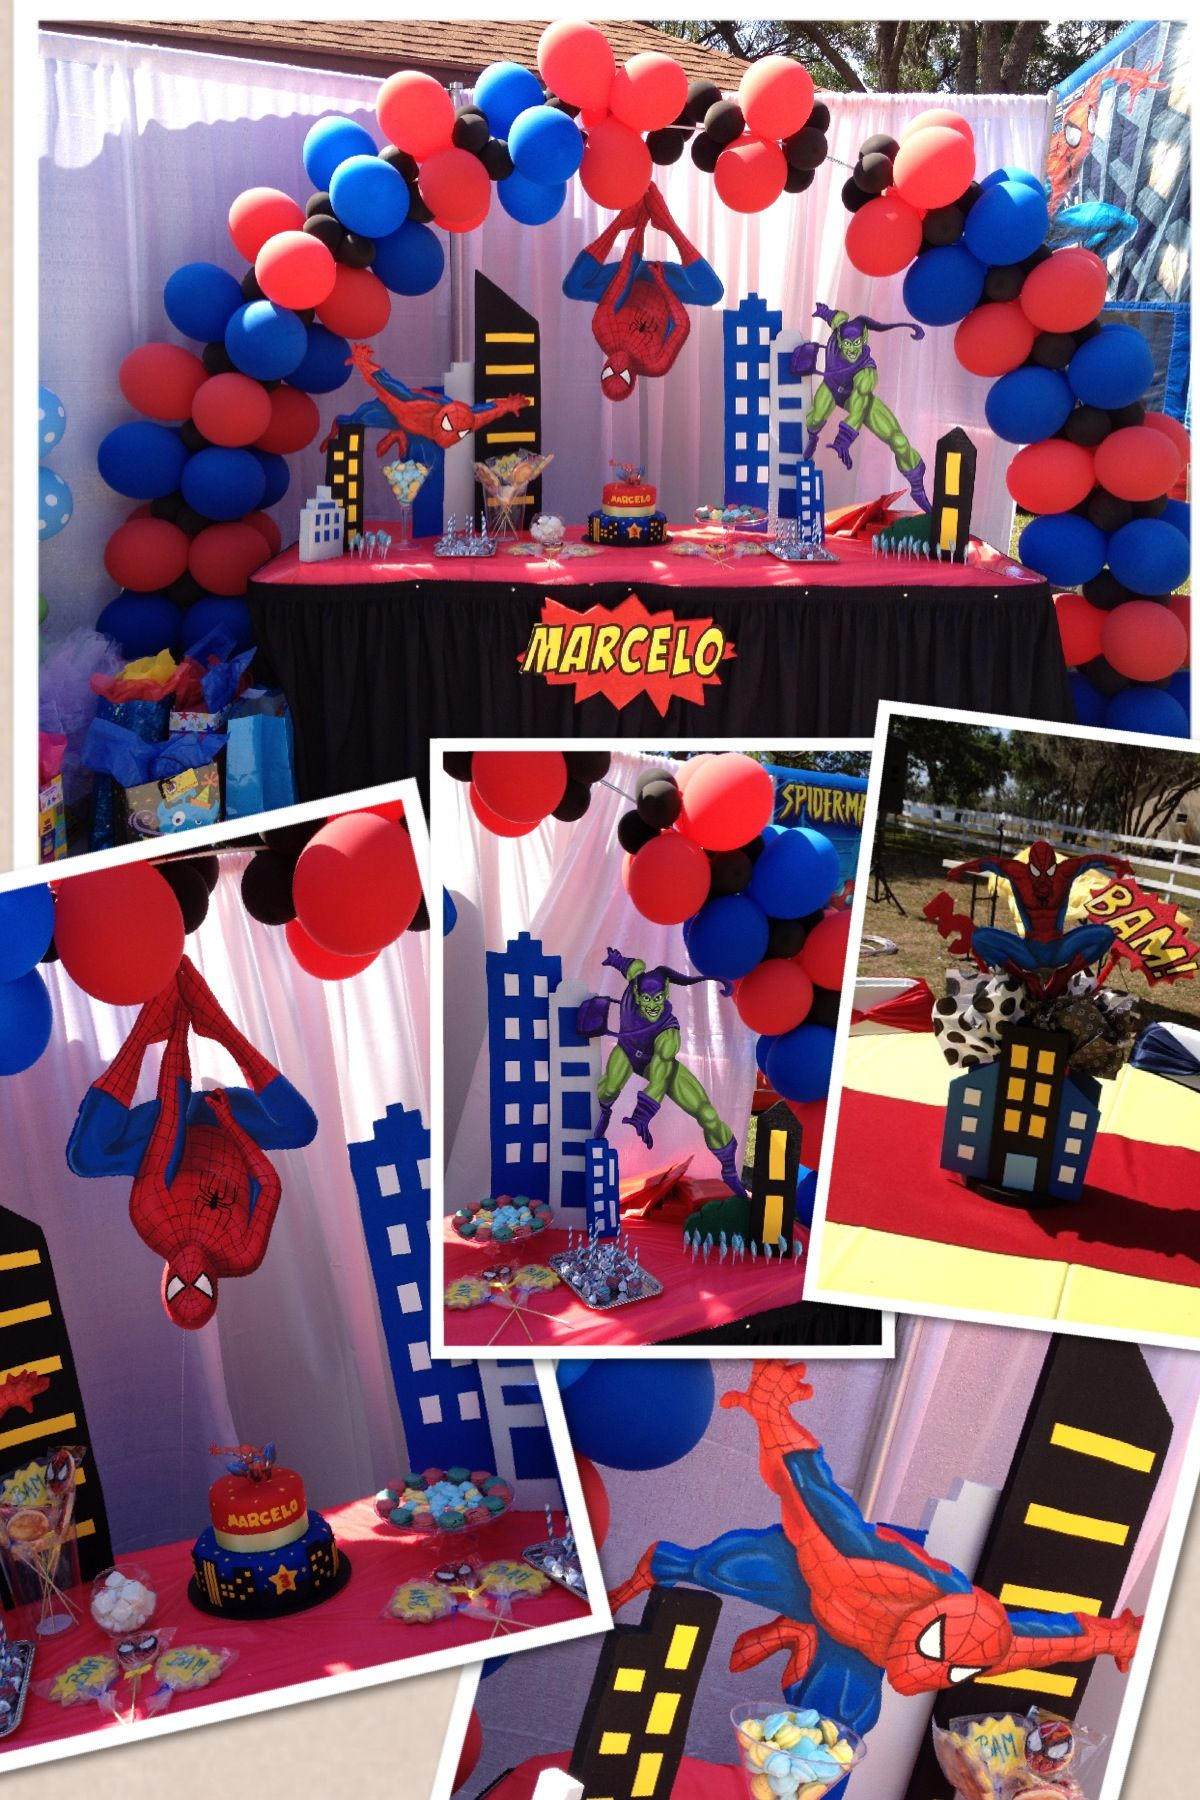 Spiderman Bedroom Decorations Similiar Spider Man Party Decorations Keywords